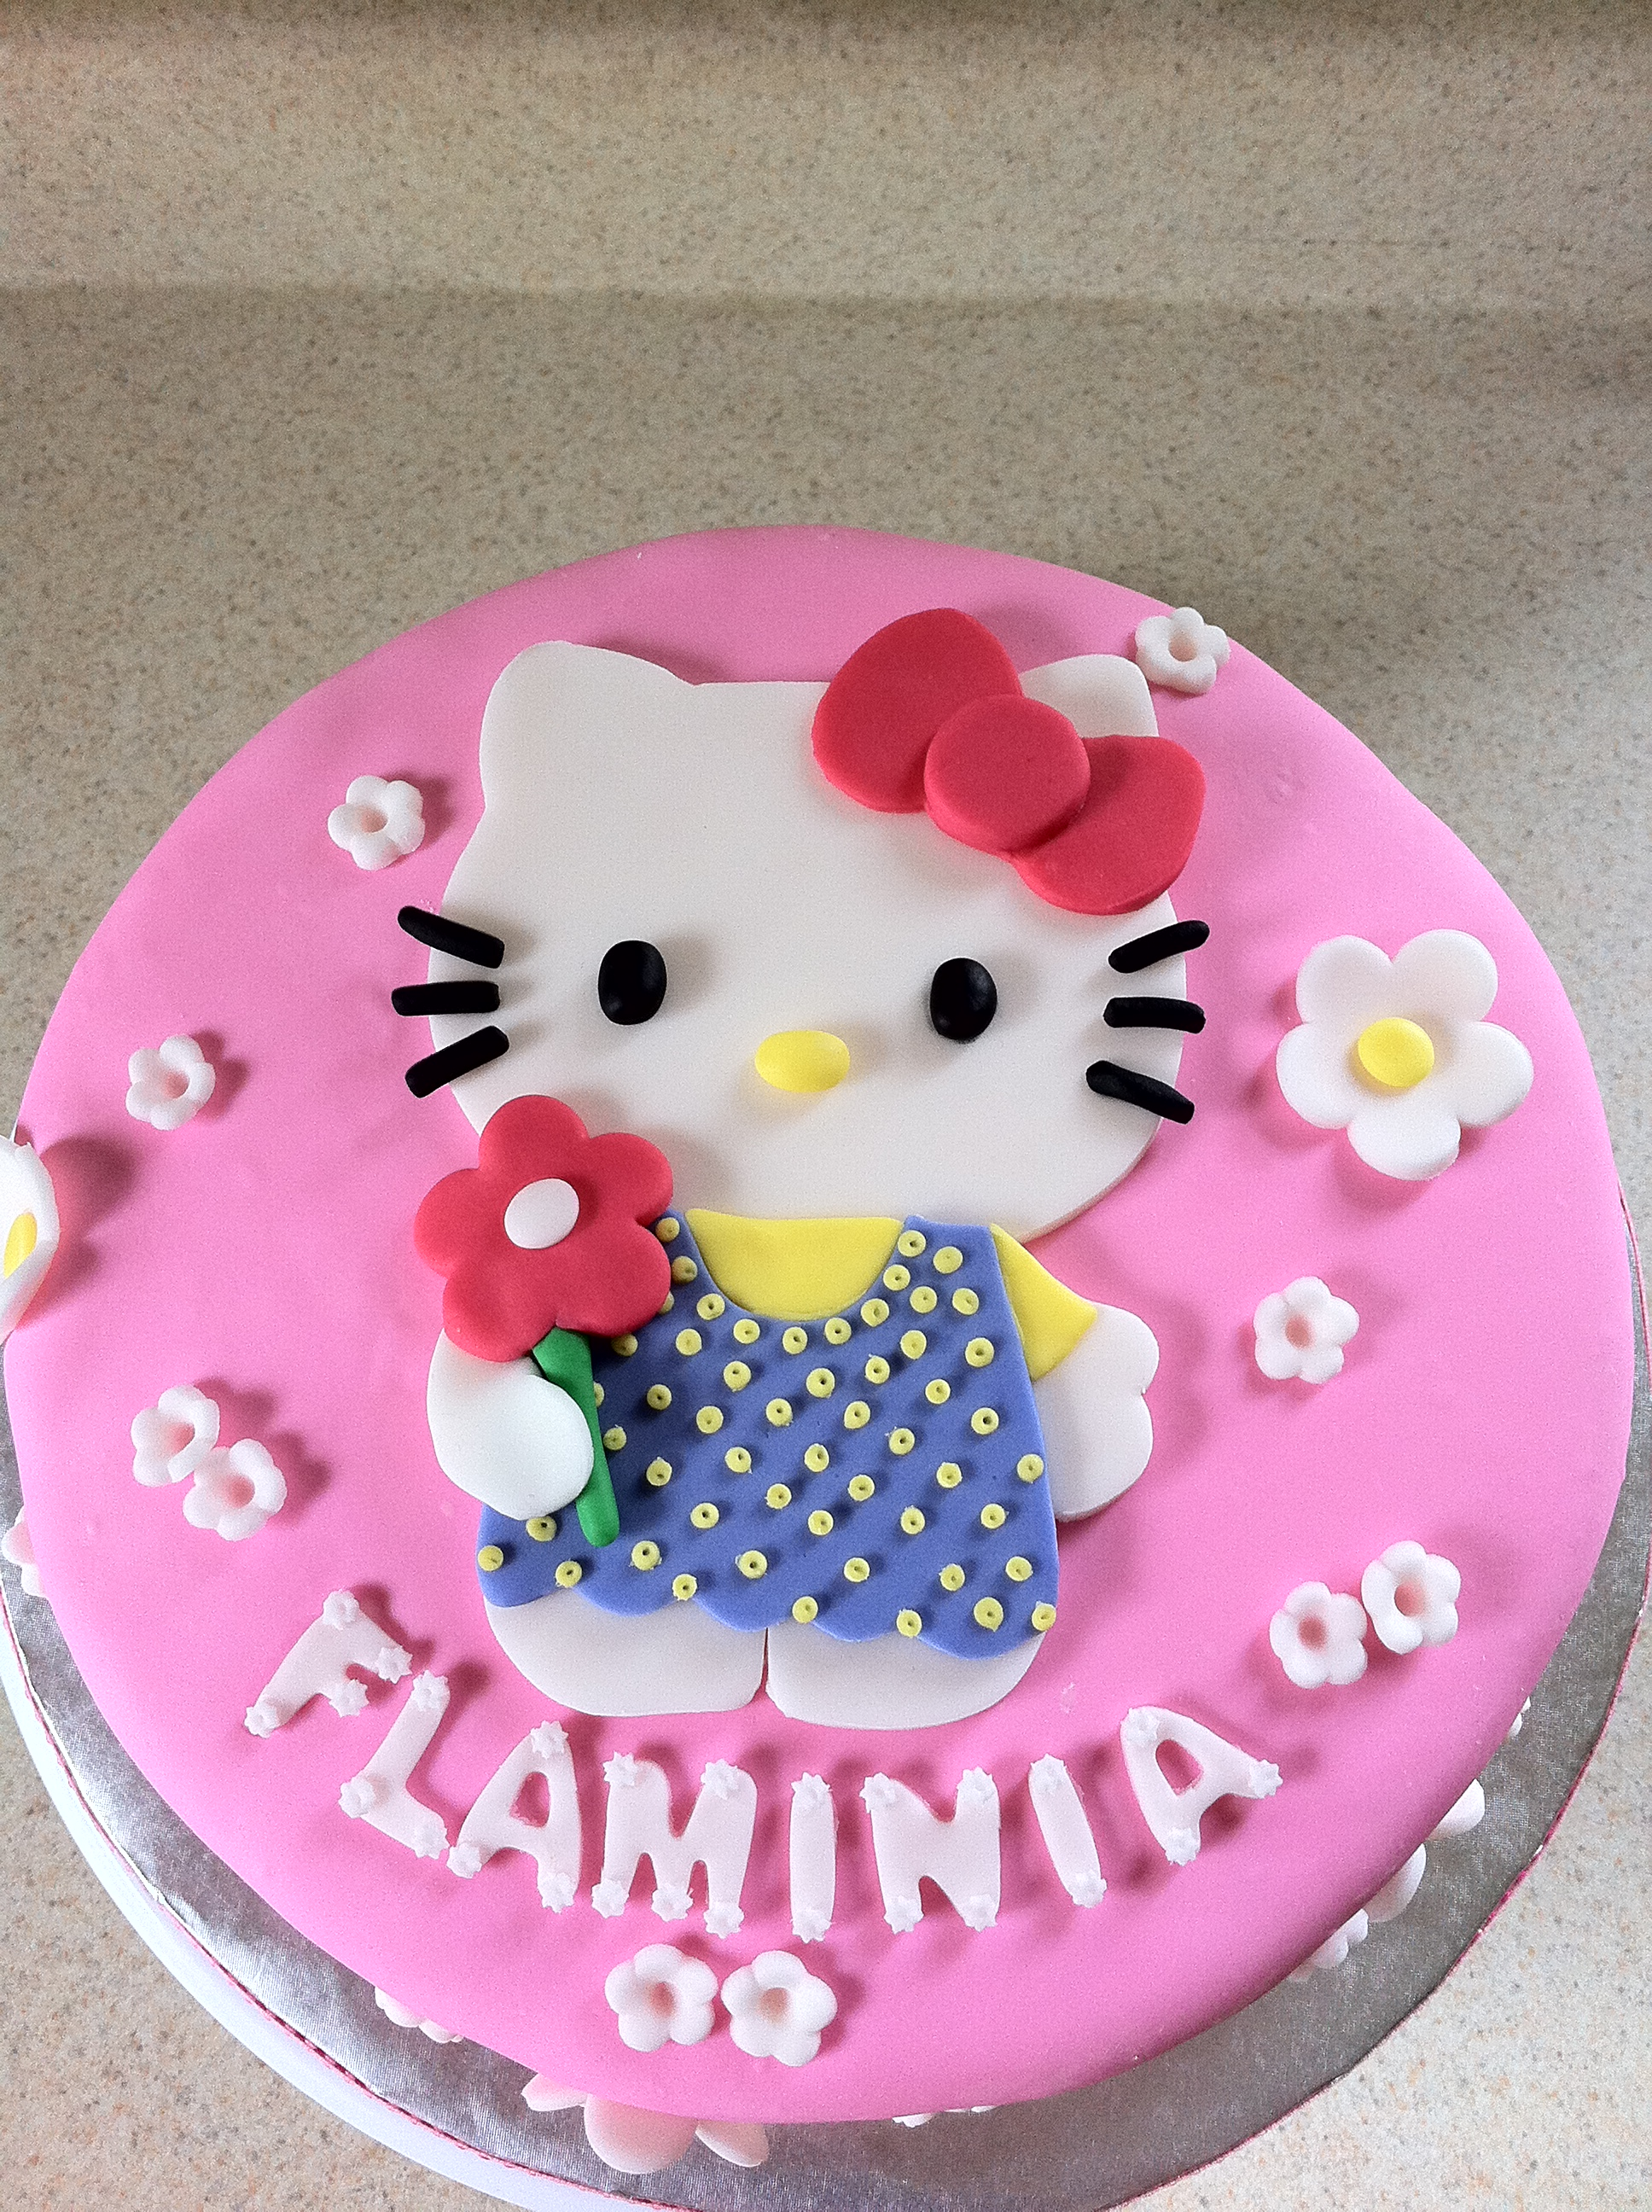 Birthday Cake Pictures Hello Kitty : Pink Hello Kitty birthday cake Lolo s Cakes & Sweets